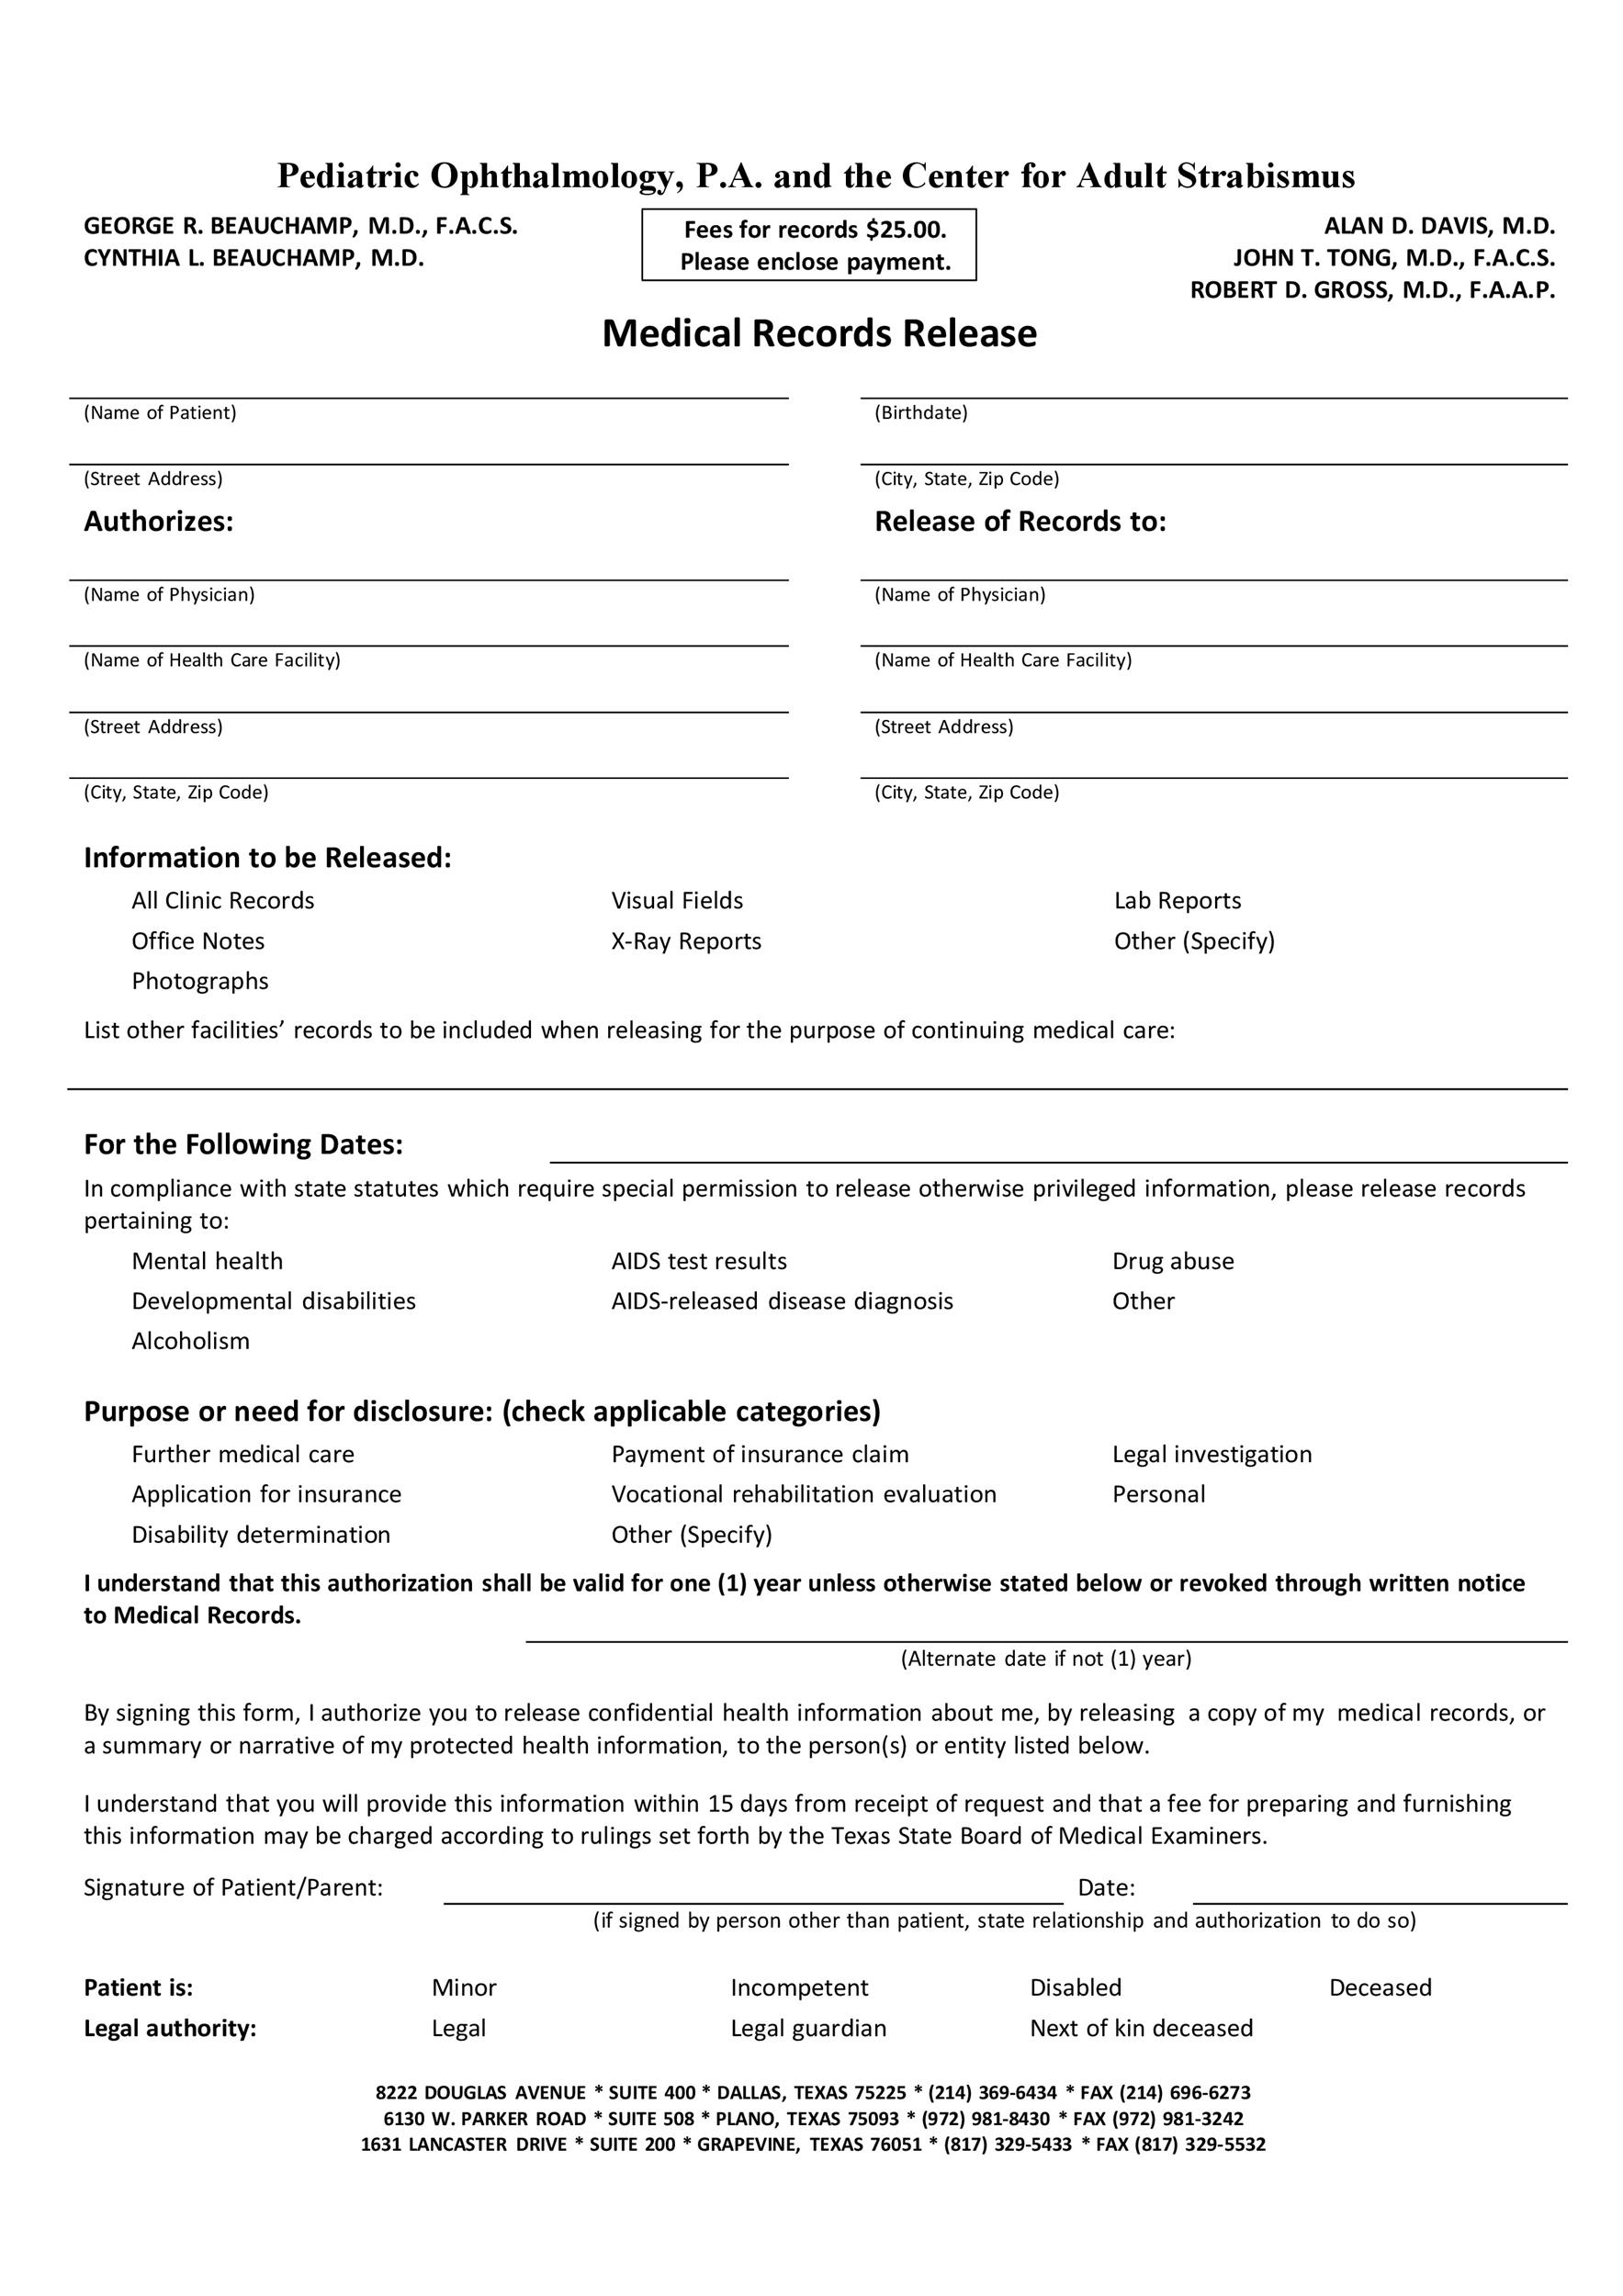 Medical Release Form Sample Fitness Professional S #0: Medical Release Form 11